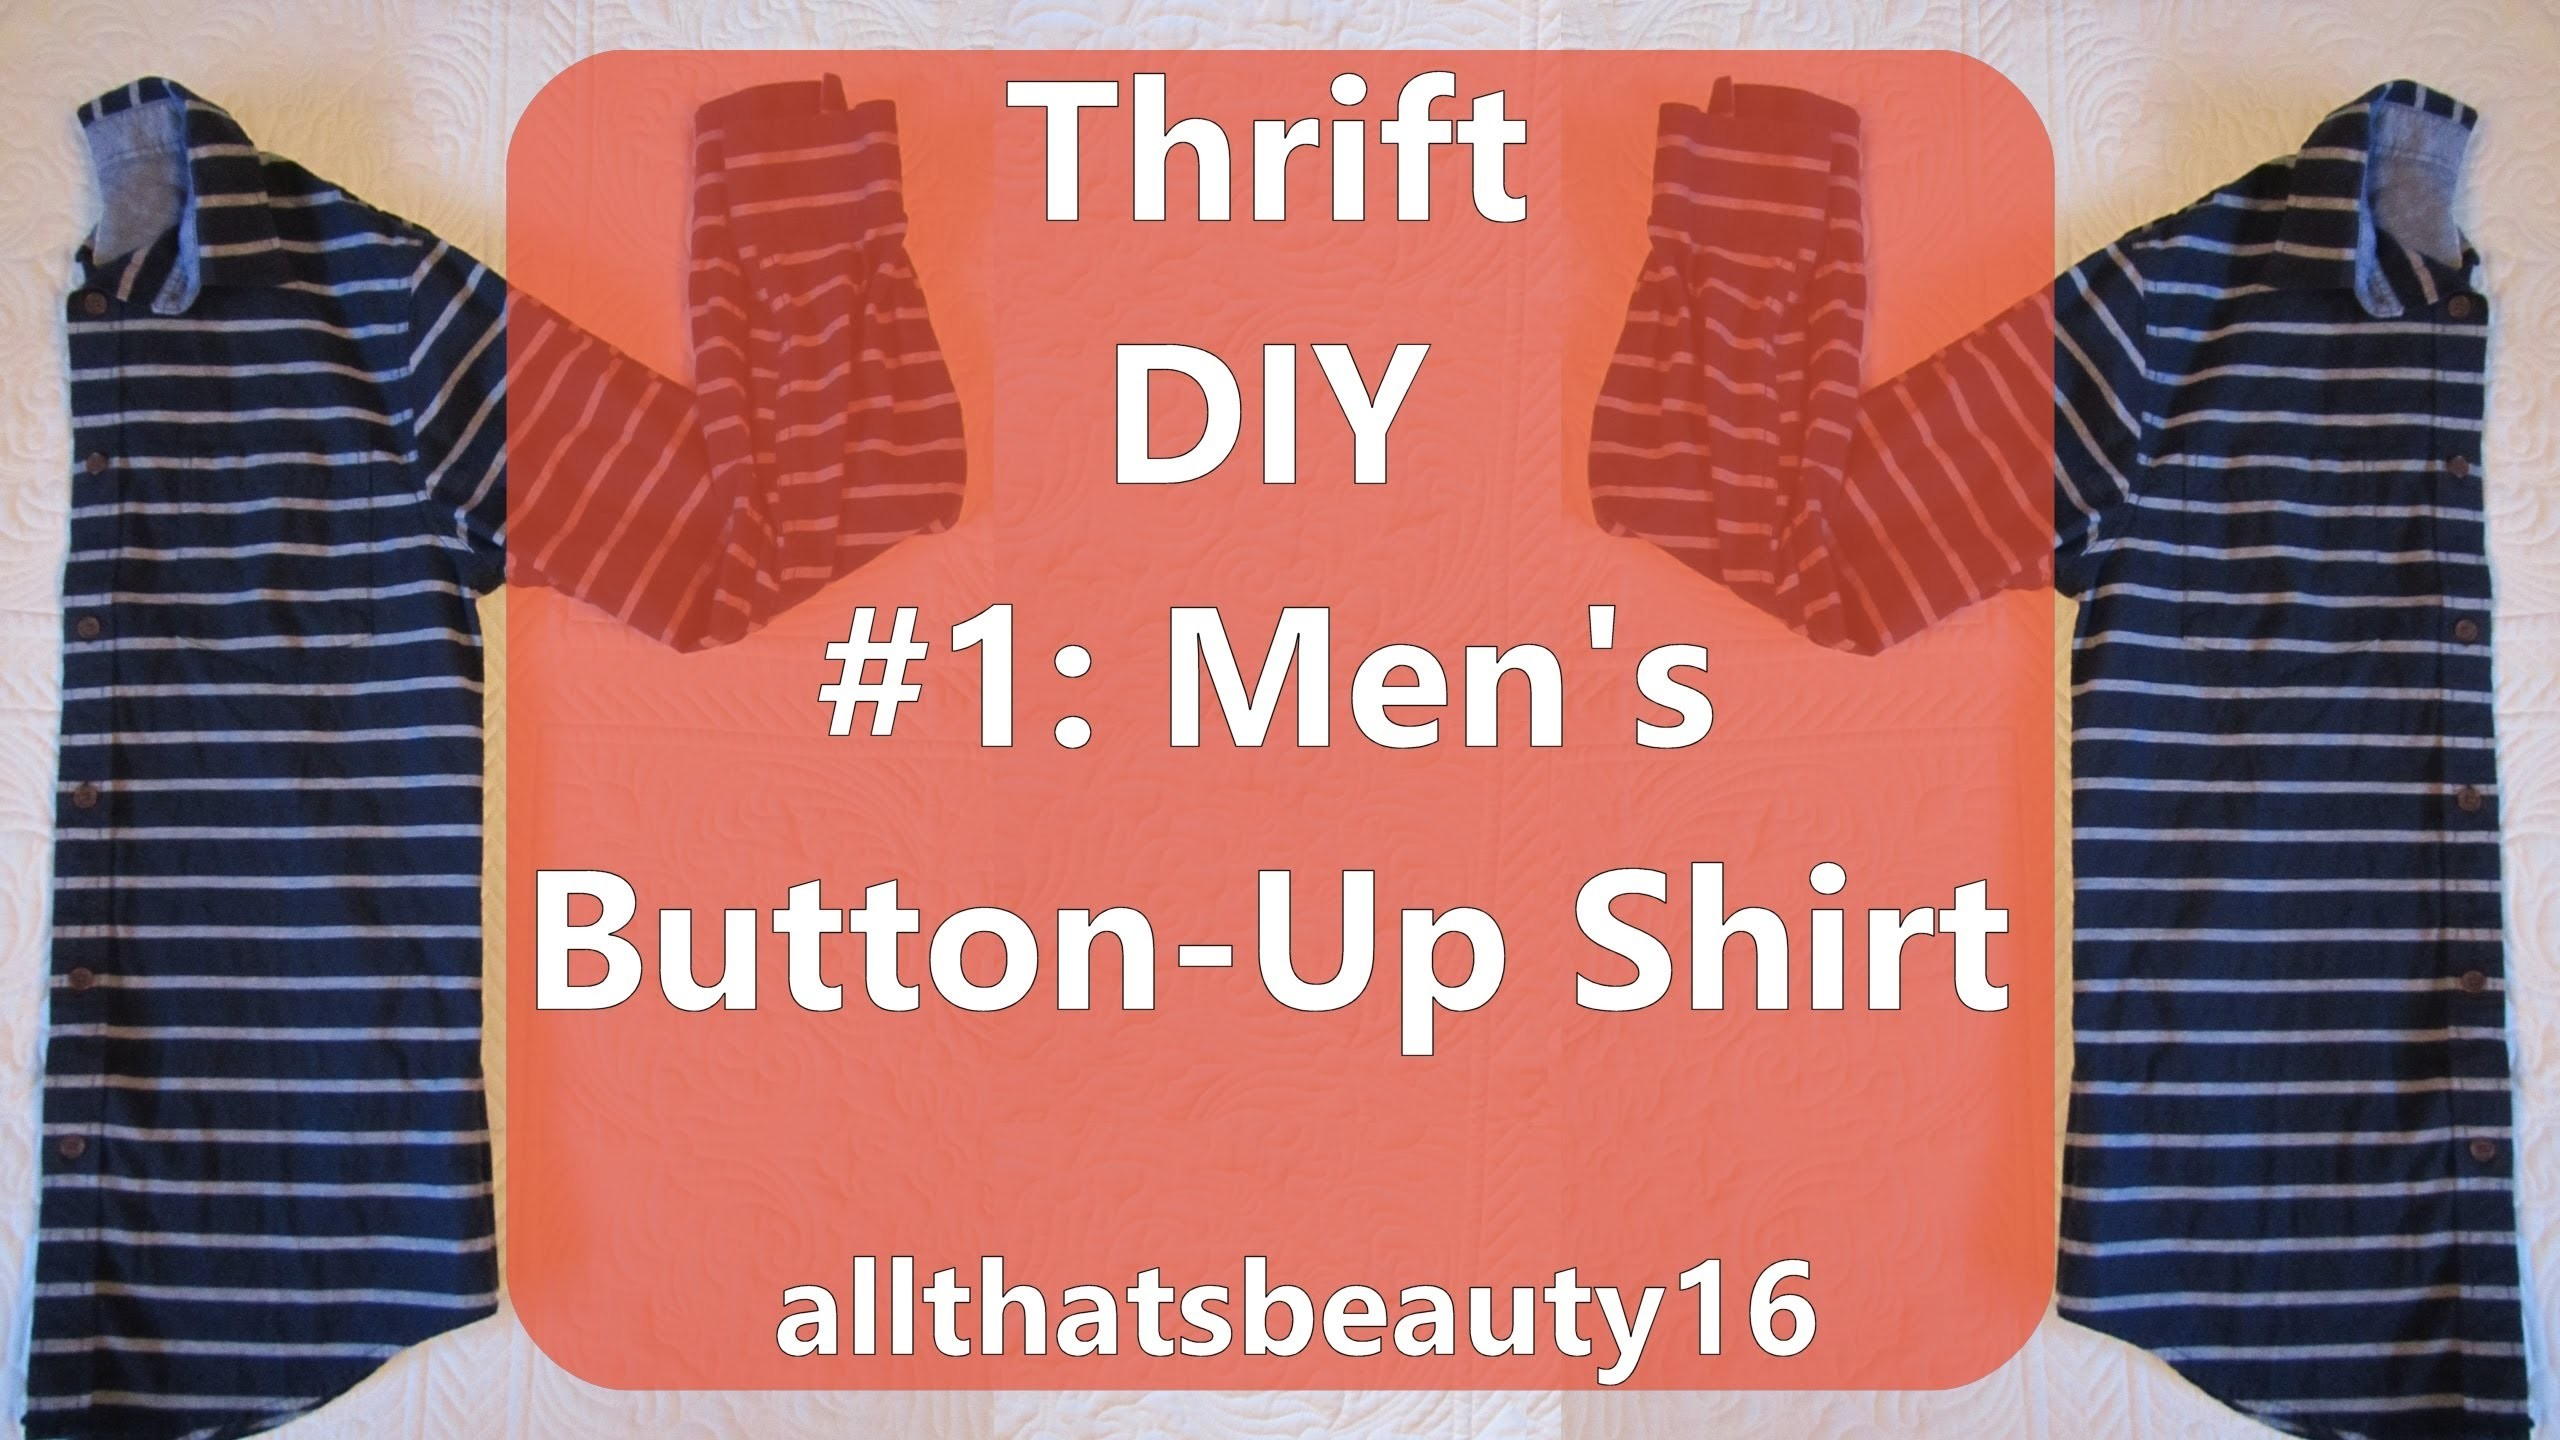 Thrift DIY #1: Men's Button-Up Shirt ♡ 2014 | allthatsbeauty16